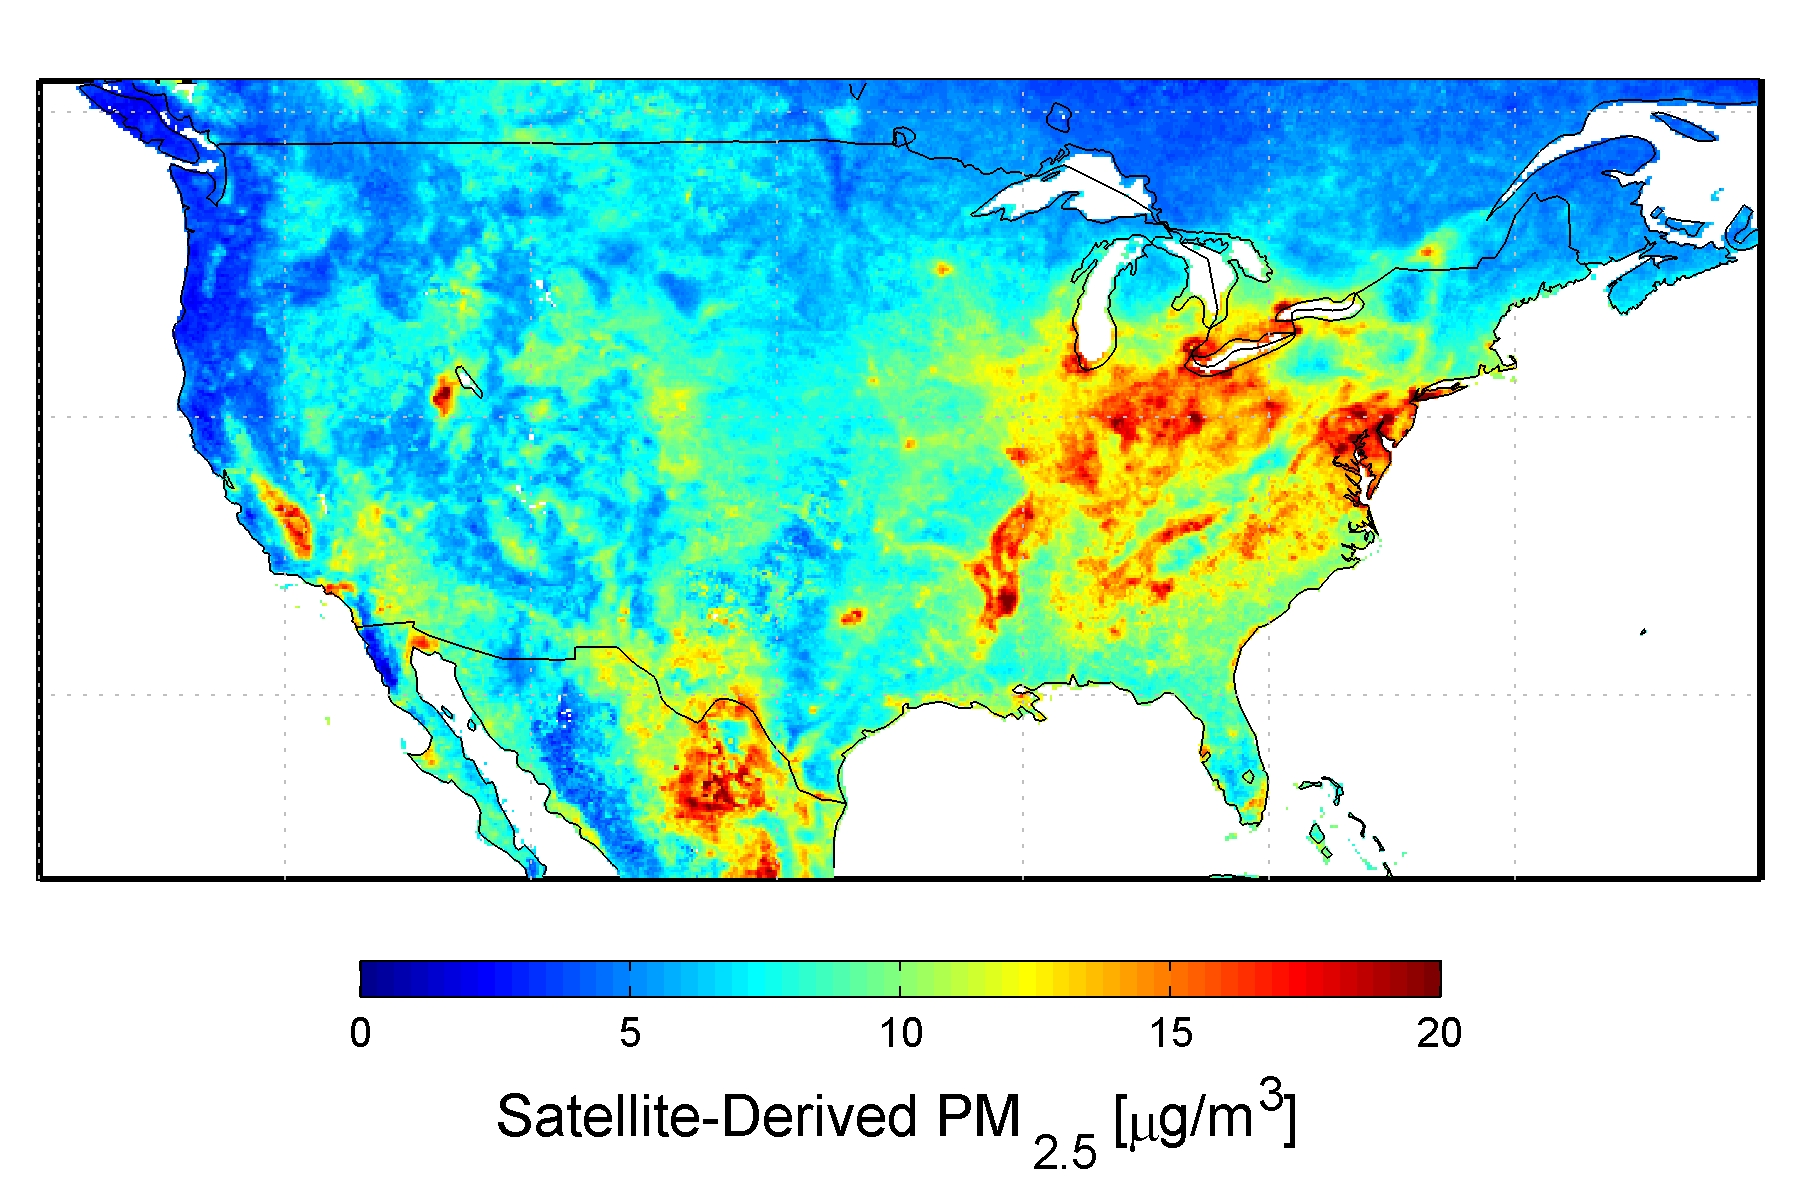 NASA New Map Offers a Global View of HealthSapping Air Pollution